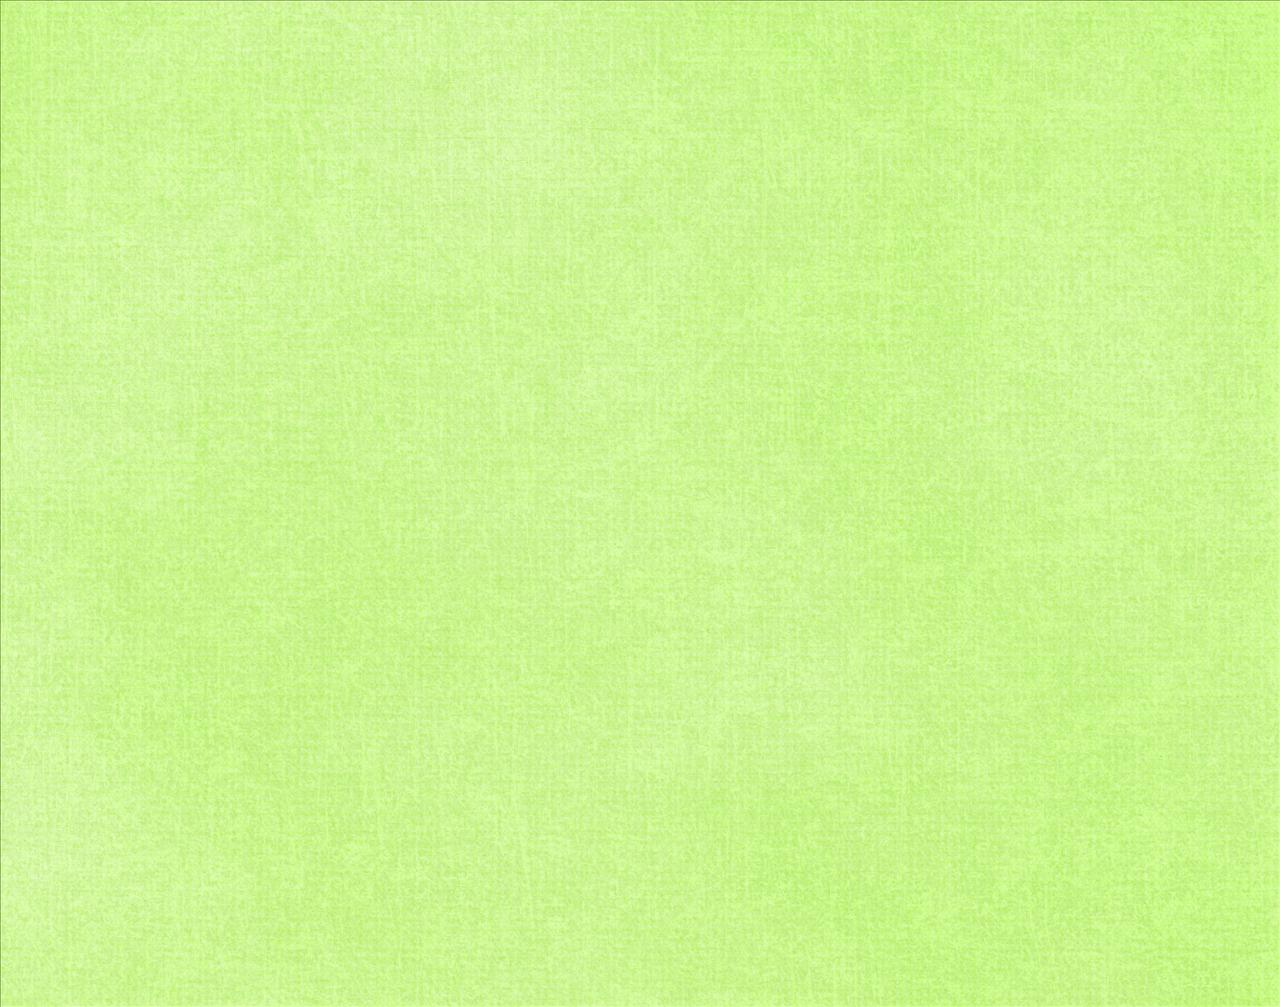 Download Pastel Green Wallpaper Gallery